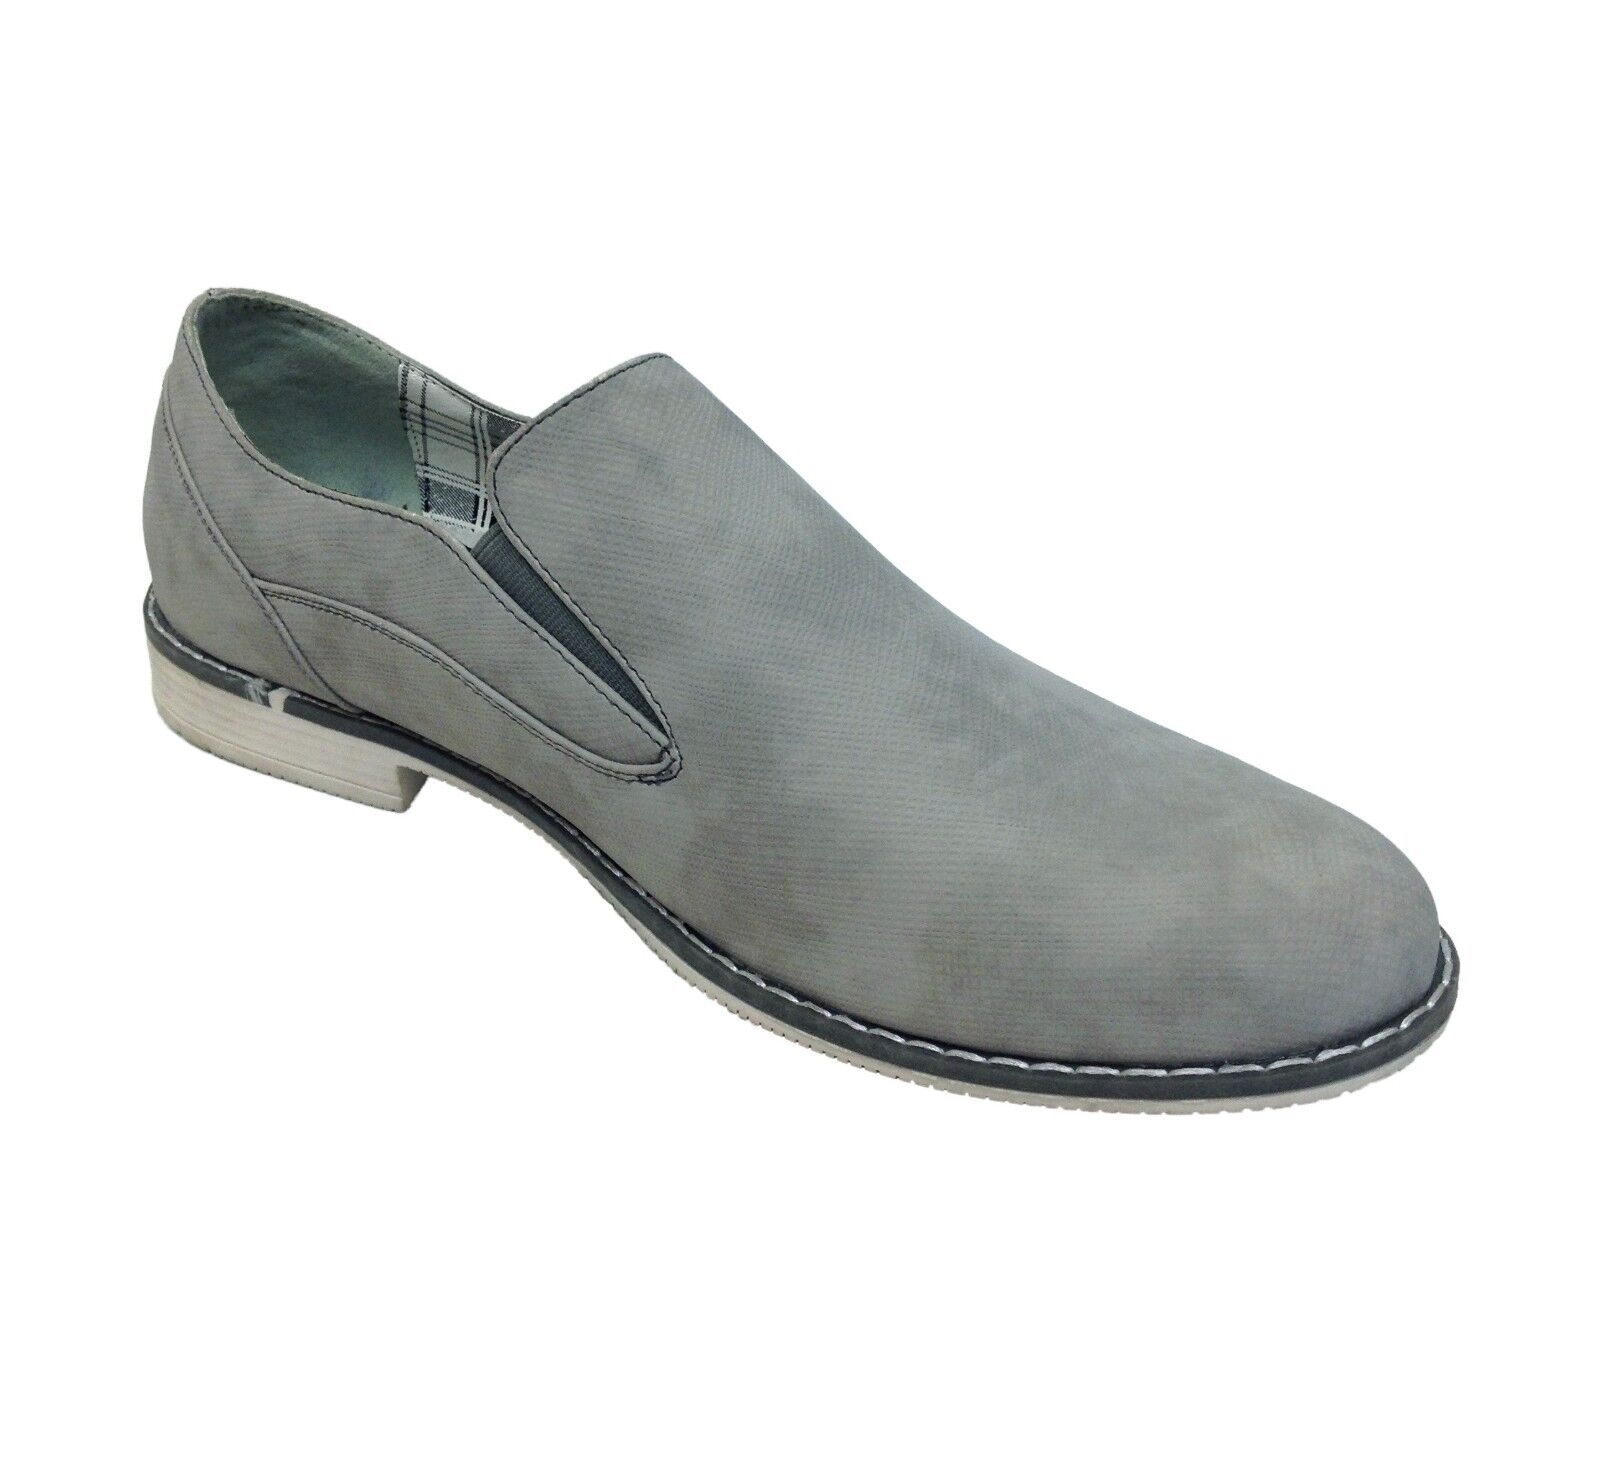 Mens Casual Shoes Italy Slip On Shoes Grey Italy Shoes Style Party Daily Wear Size fa1fb1